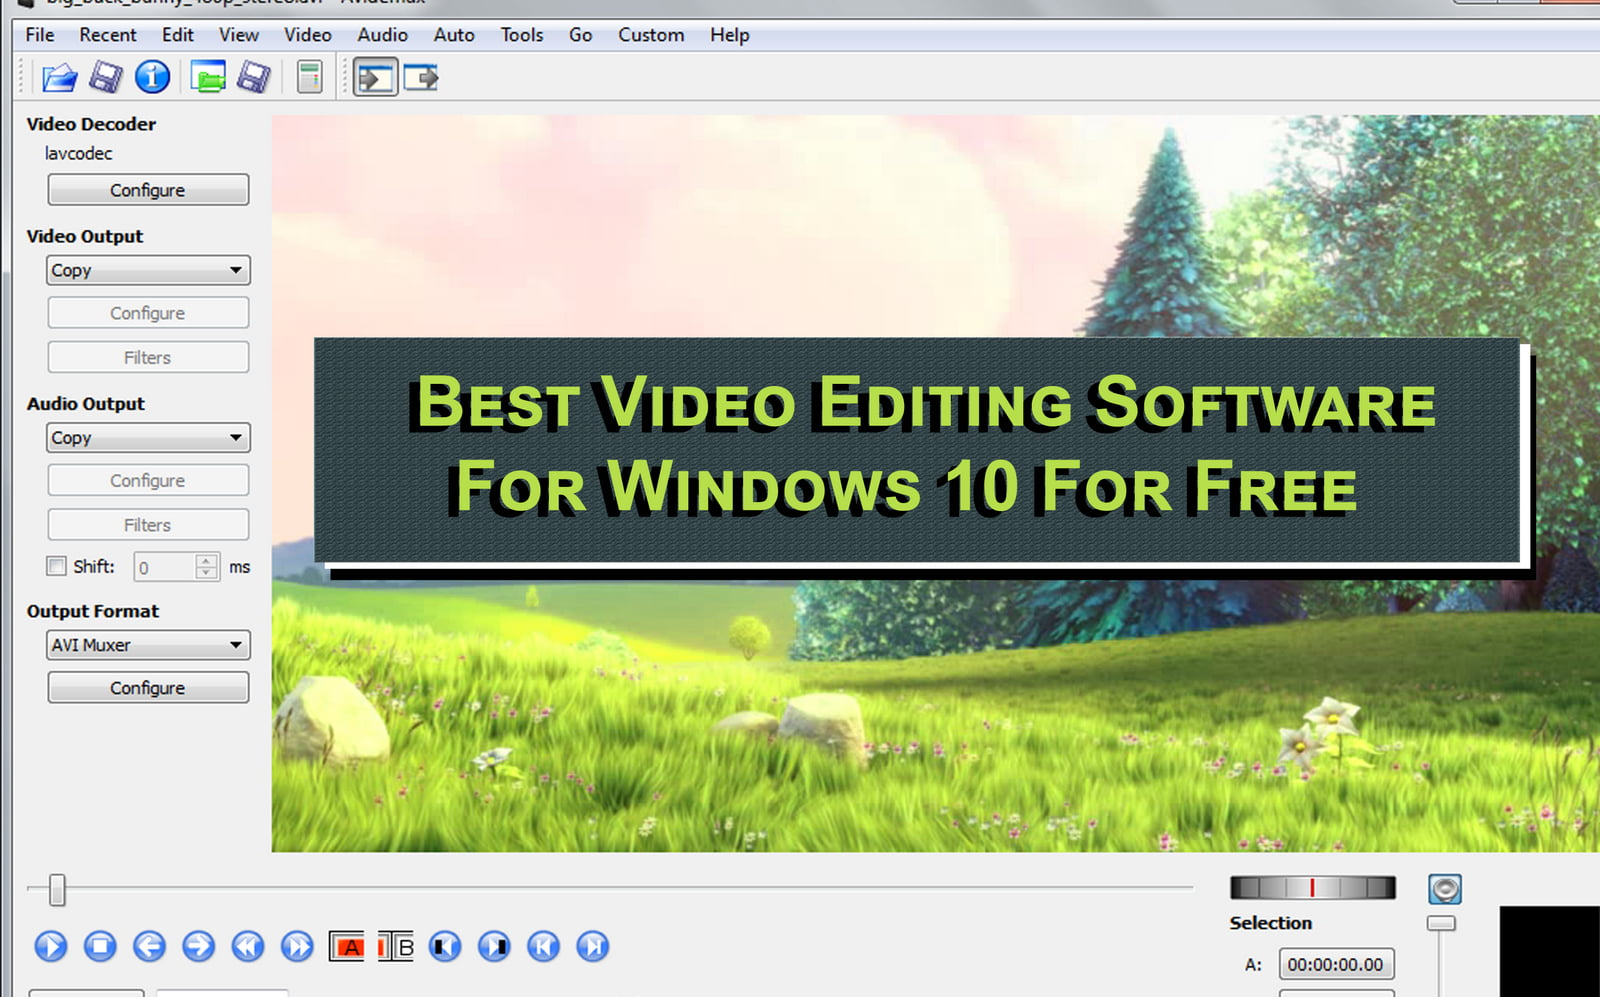 Best Video Editing Software For Windows 10 For Free